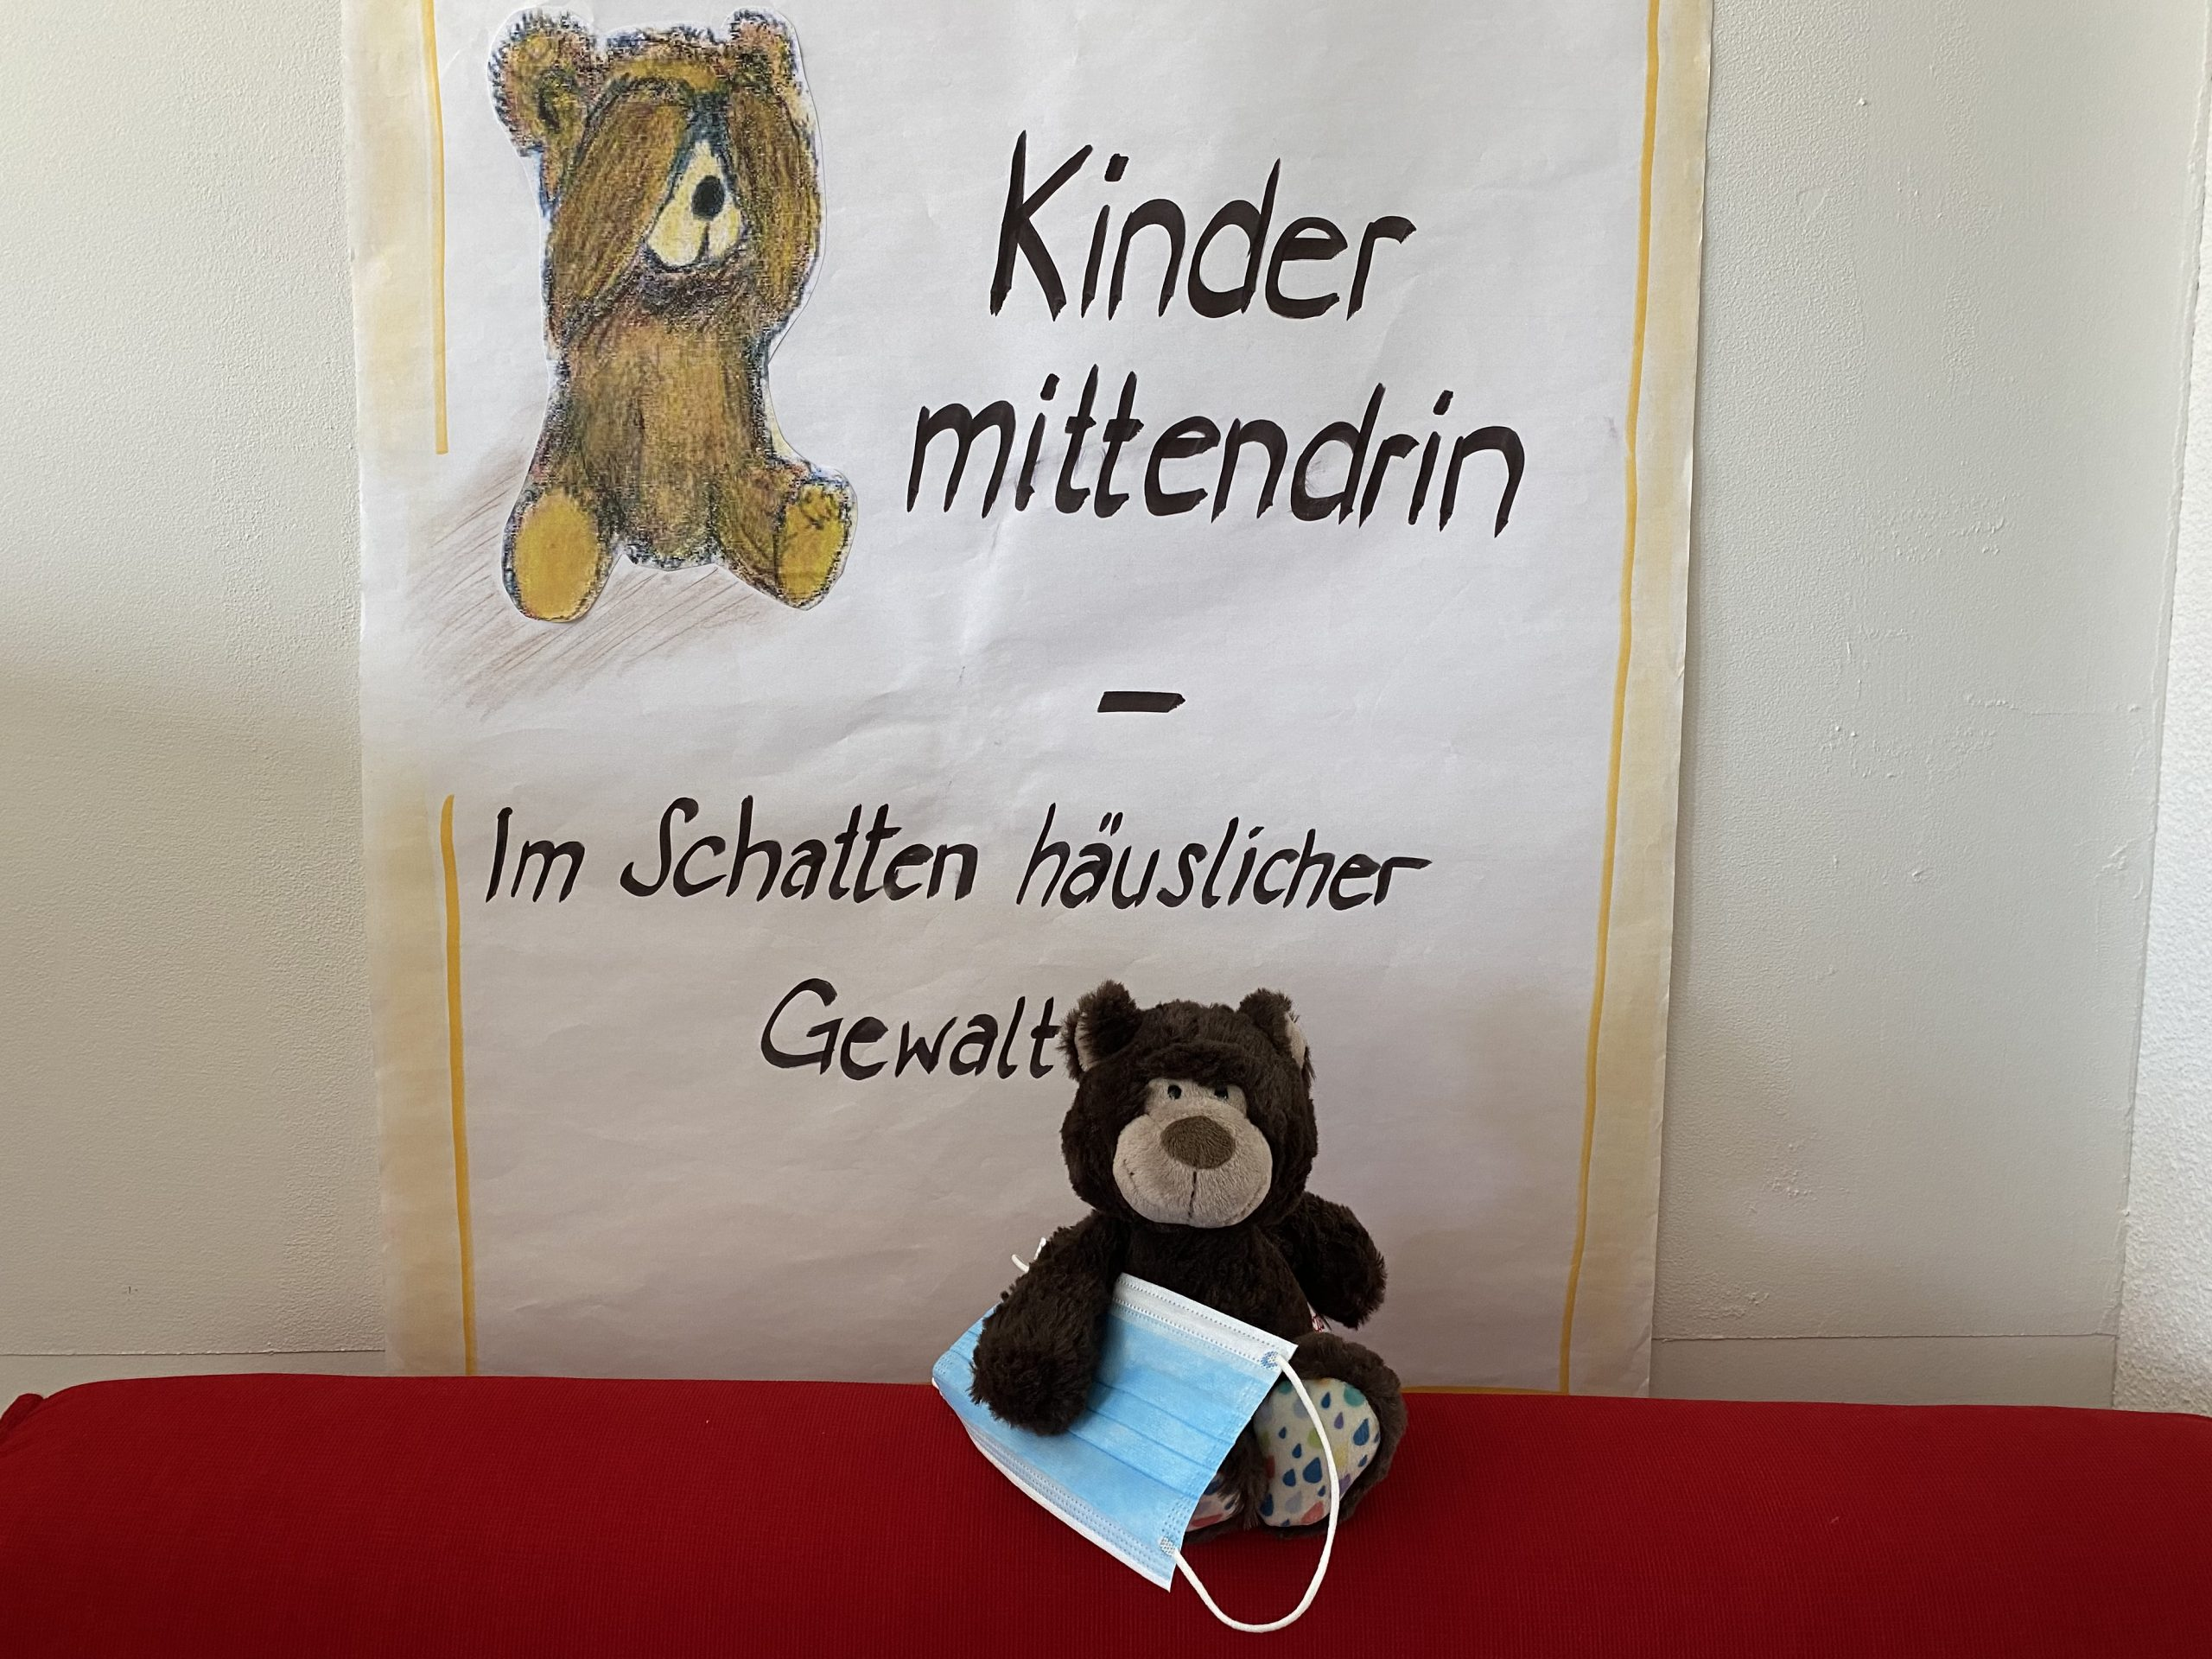 Blog Kindermittendrin